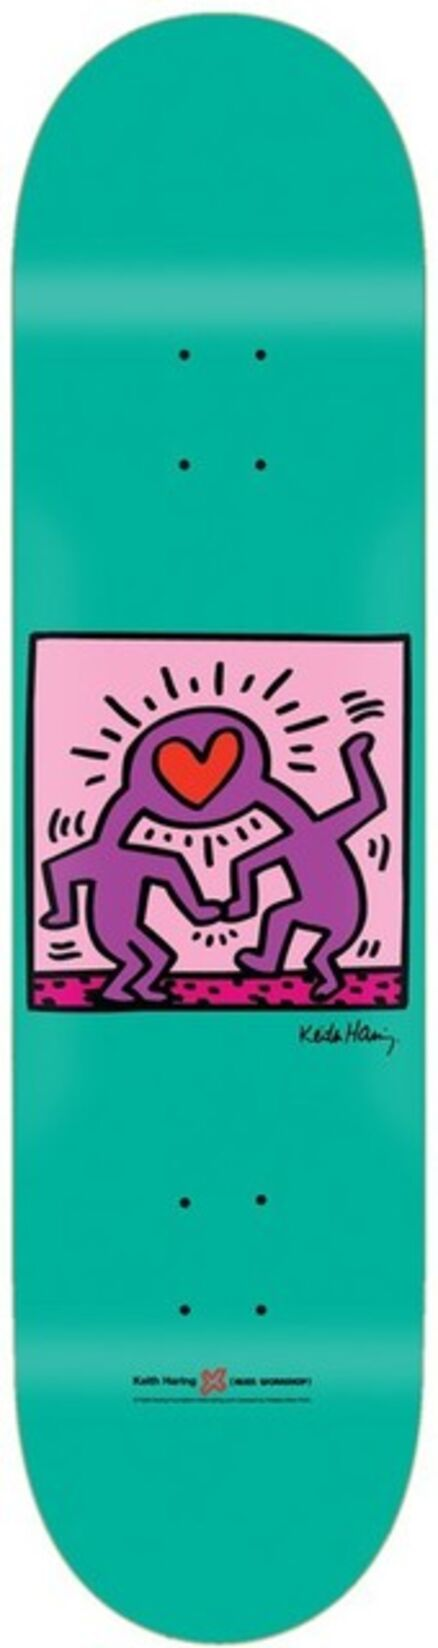 Keith Haring, 'Untitled ', 2013